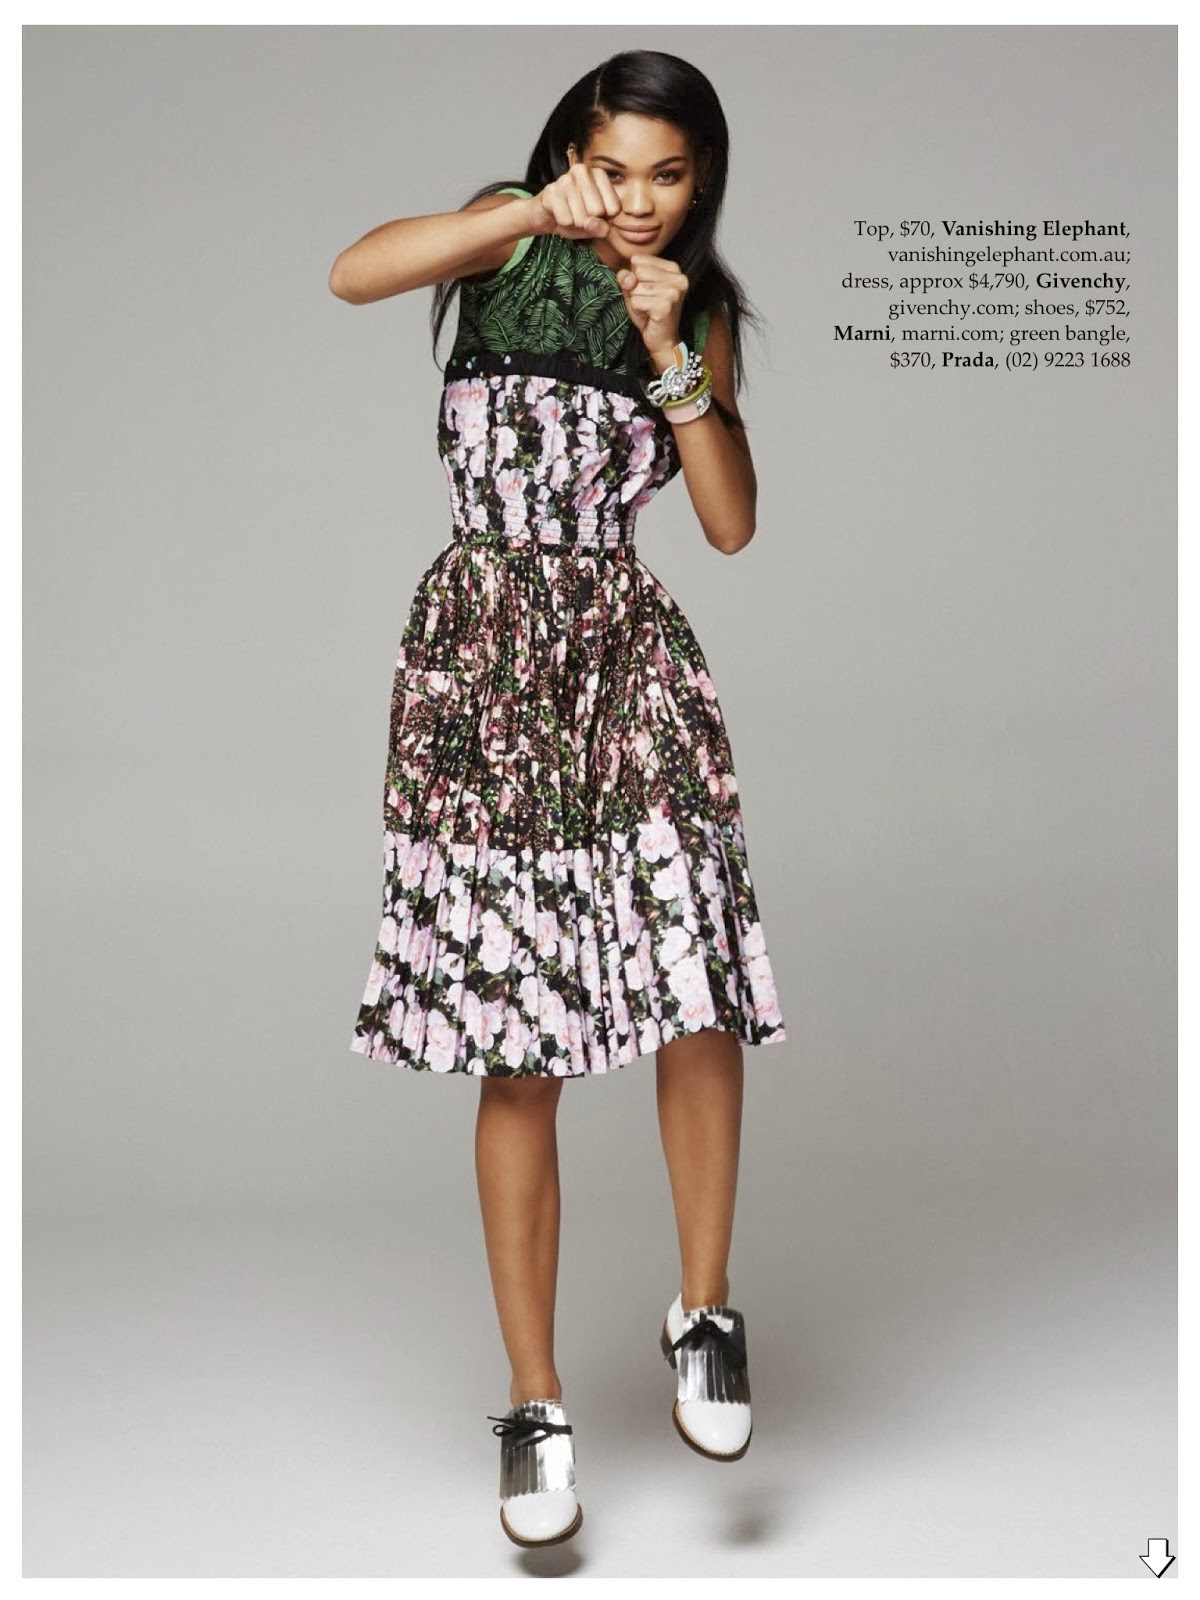 Magazine Photoshoot : Chanel Iman Photoshoot For Pierre Toussaint in Elle Magazine Australia February 2014 Issue